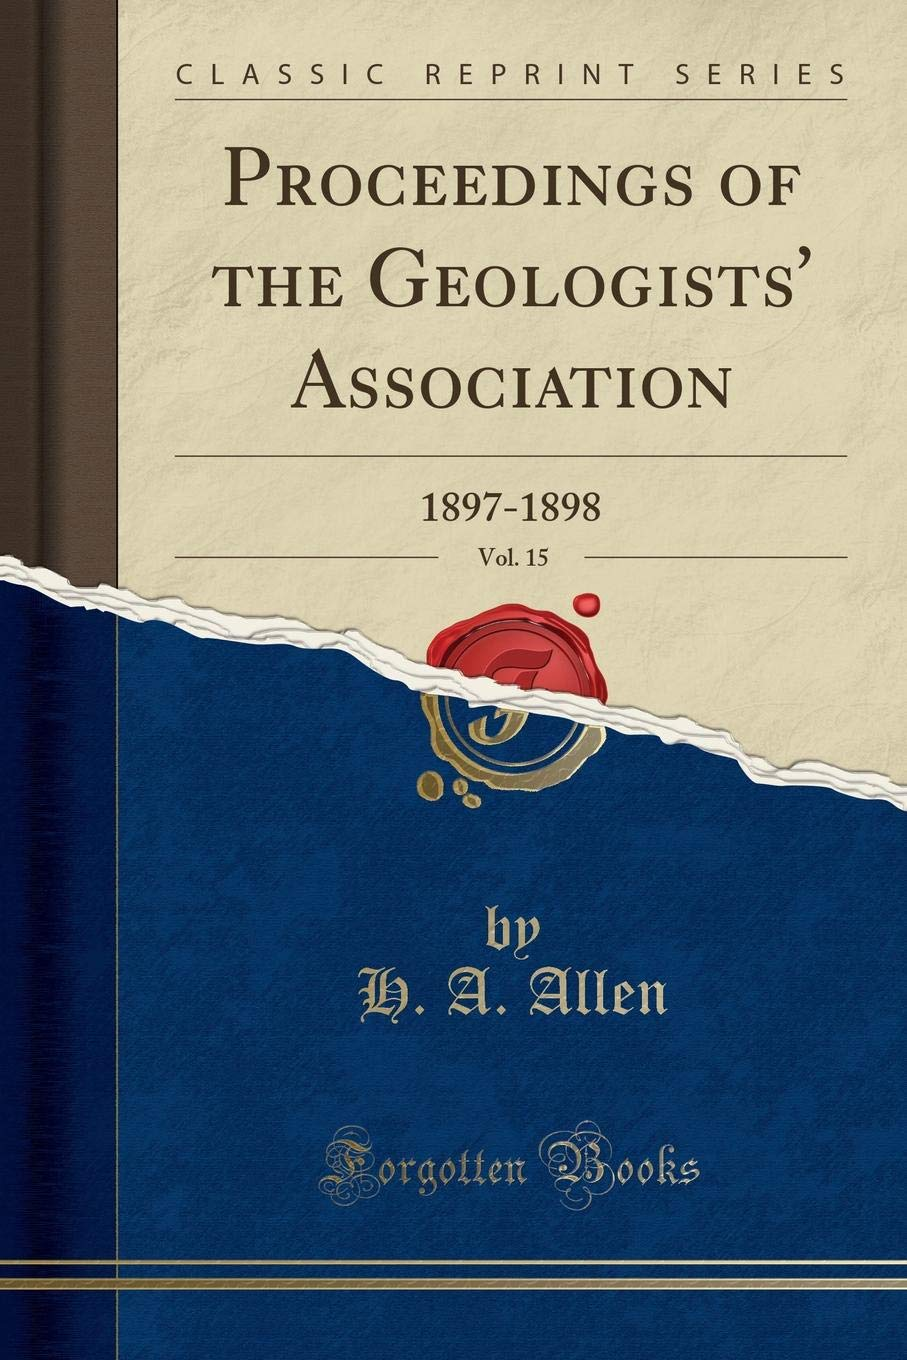 Proceedings of the Geologists' Association, Vol. 15: 1897-1898 (Classic Reprint) ebook